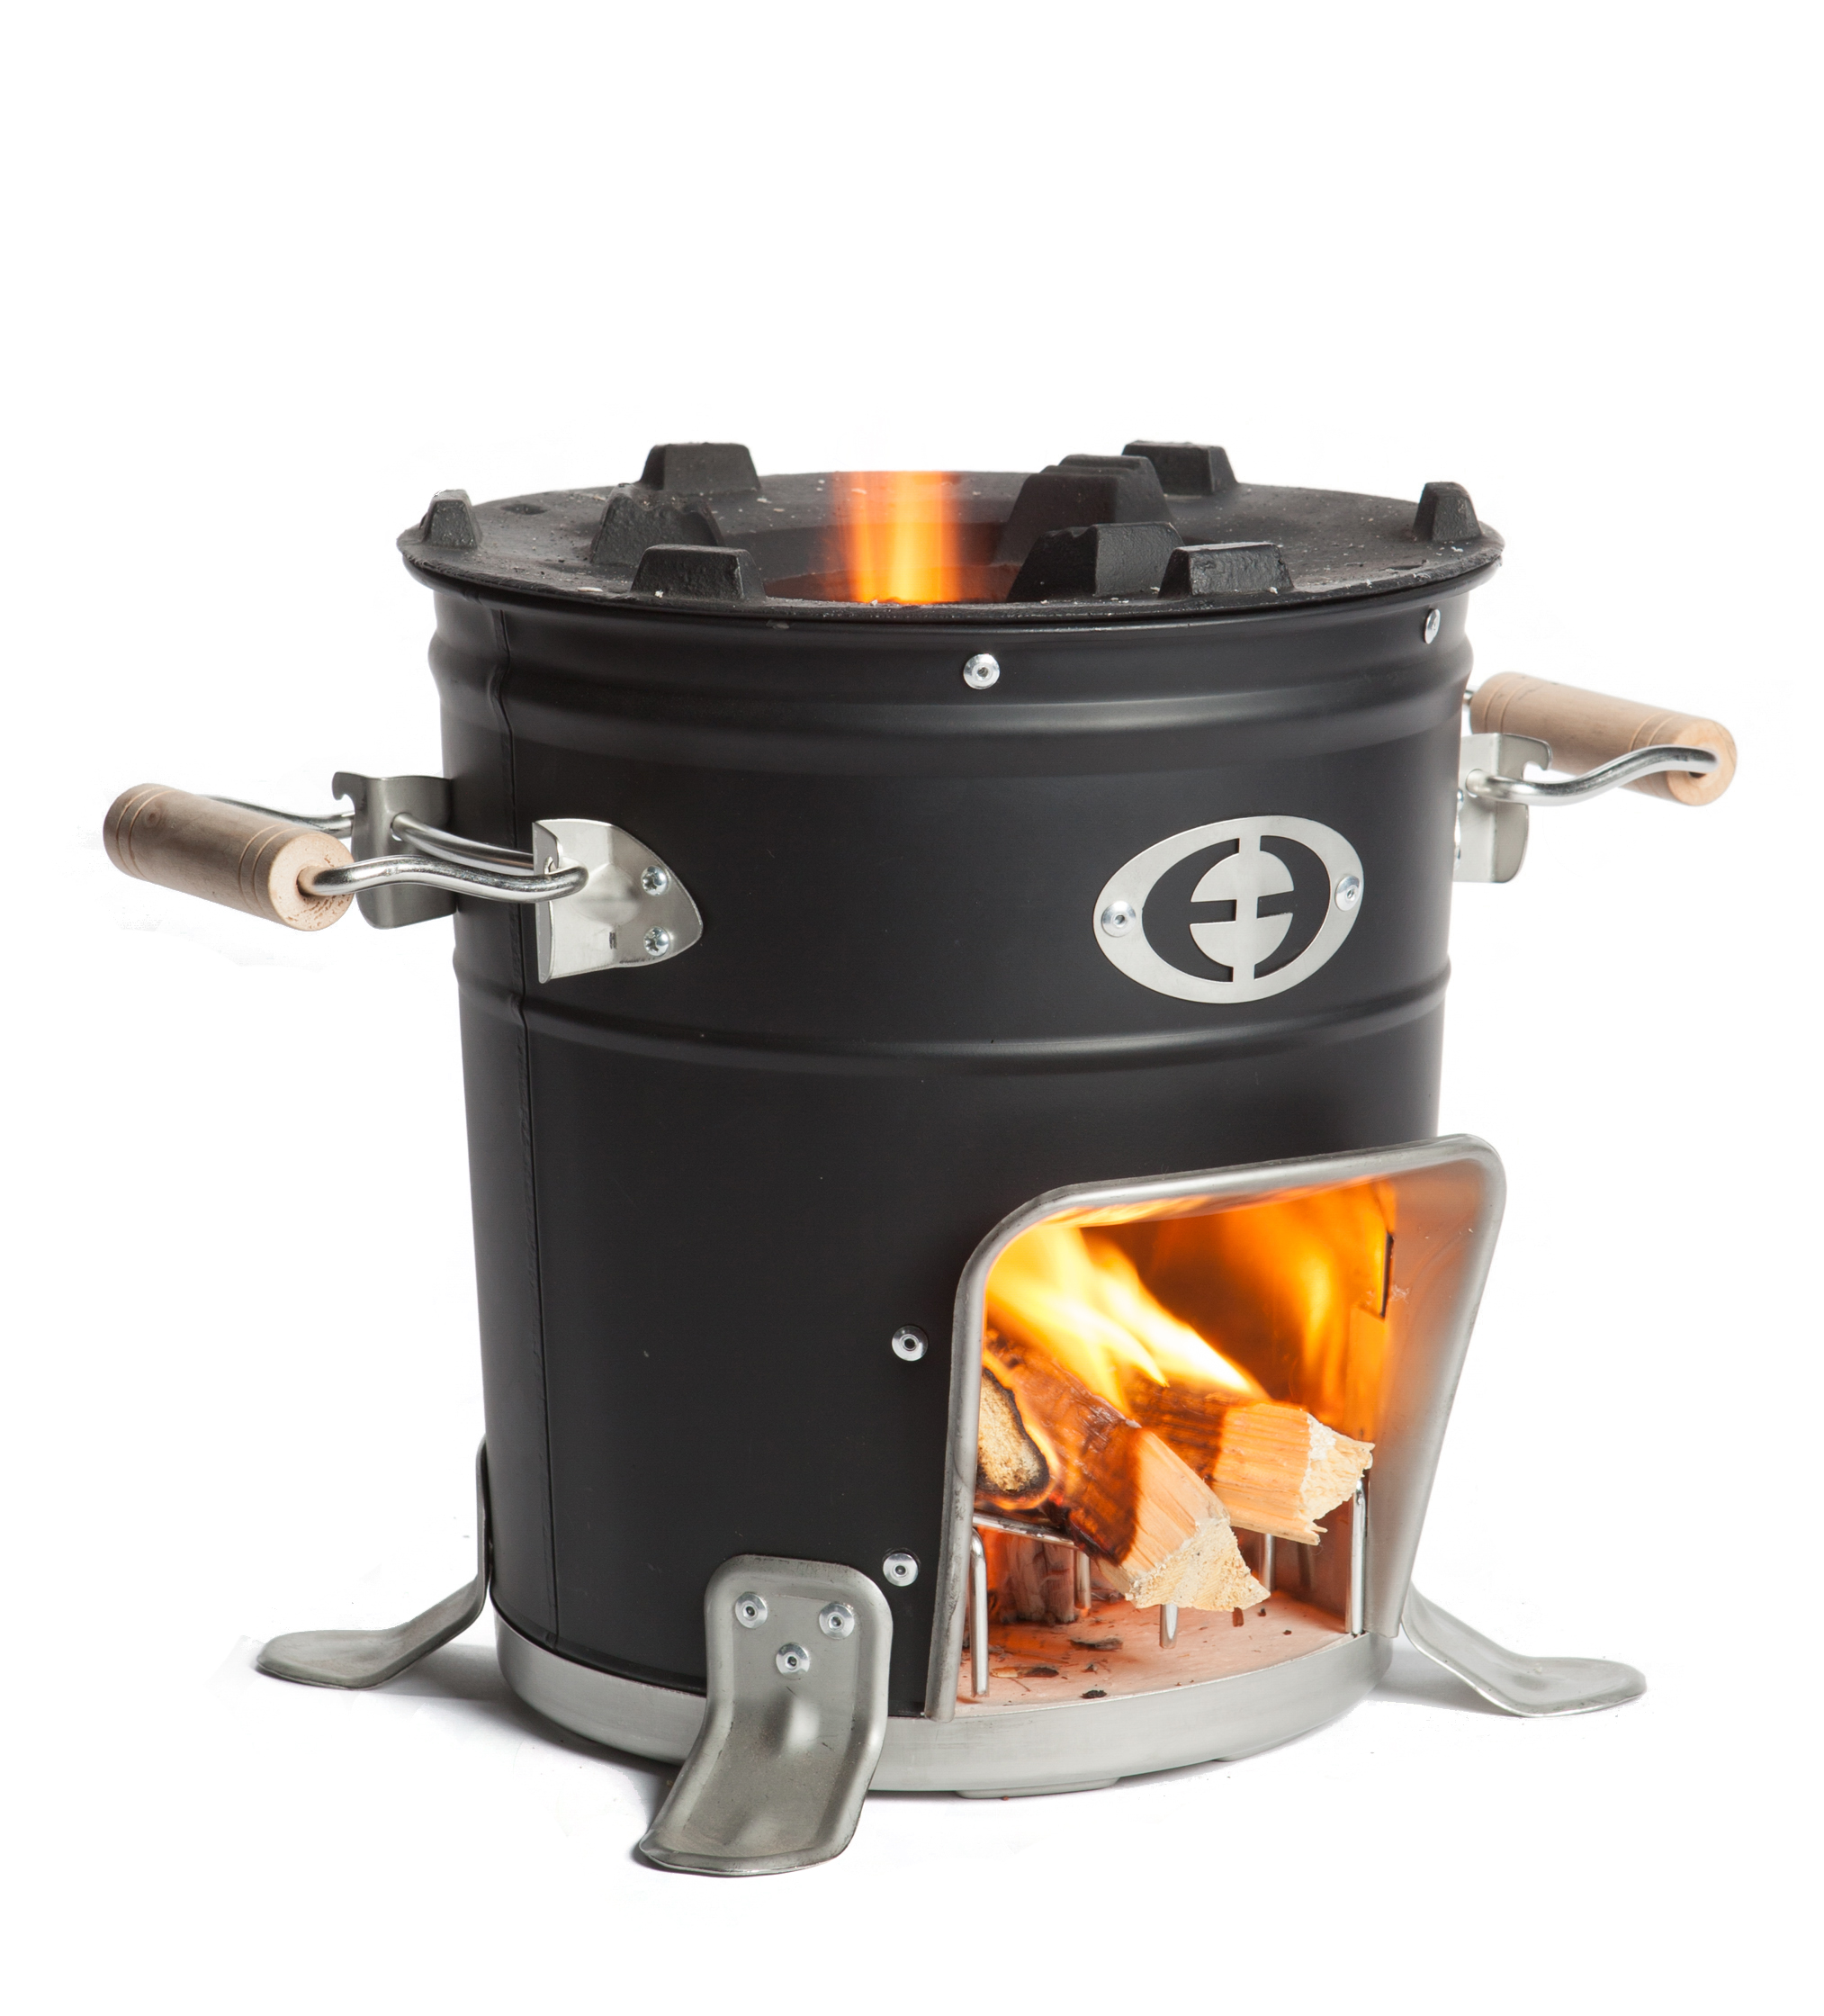 SuperSaver GL Wood Cookstove